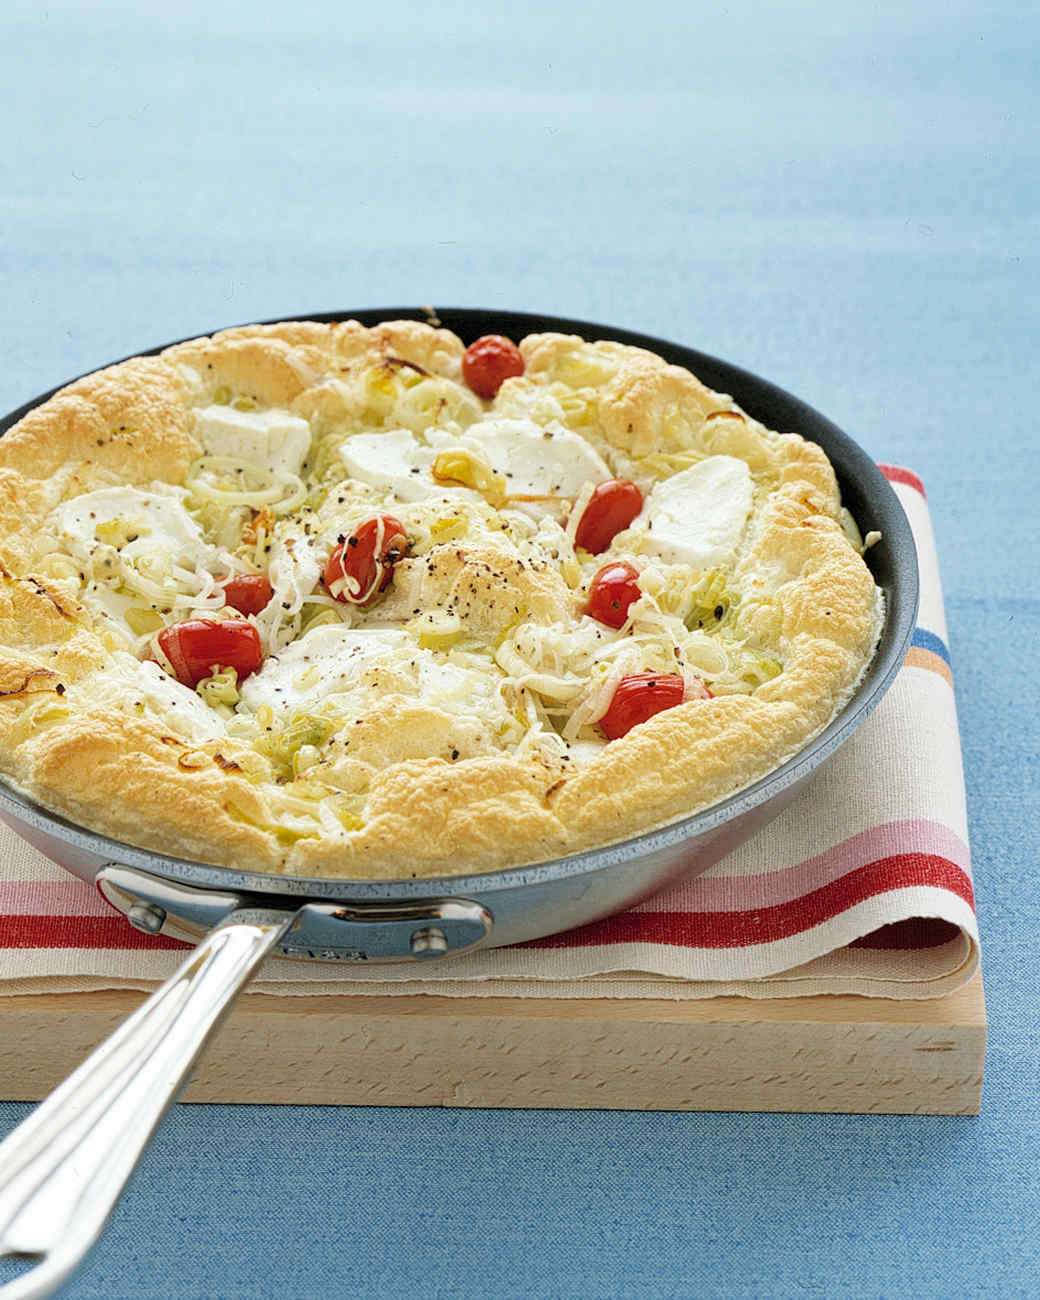 Tomato and Leek Frittata